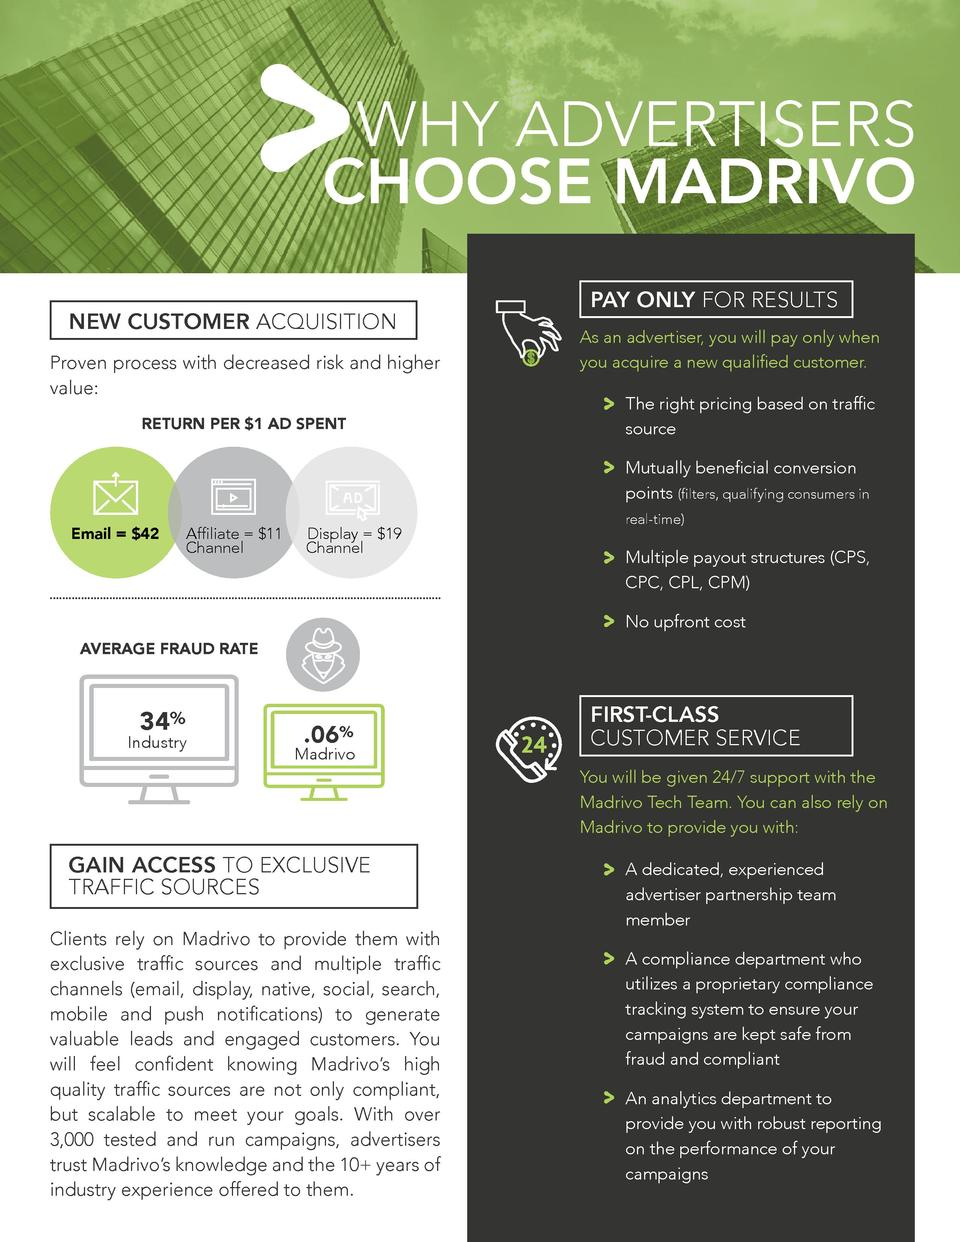 WHY ADVERTISERS CHOOSE MADRIVO NEW CUSTOMER ACQUISITION Proven process with decreased risk and higher value  RETURN PER  1...